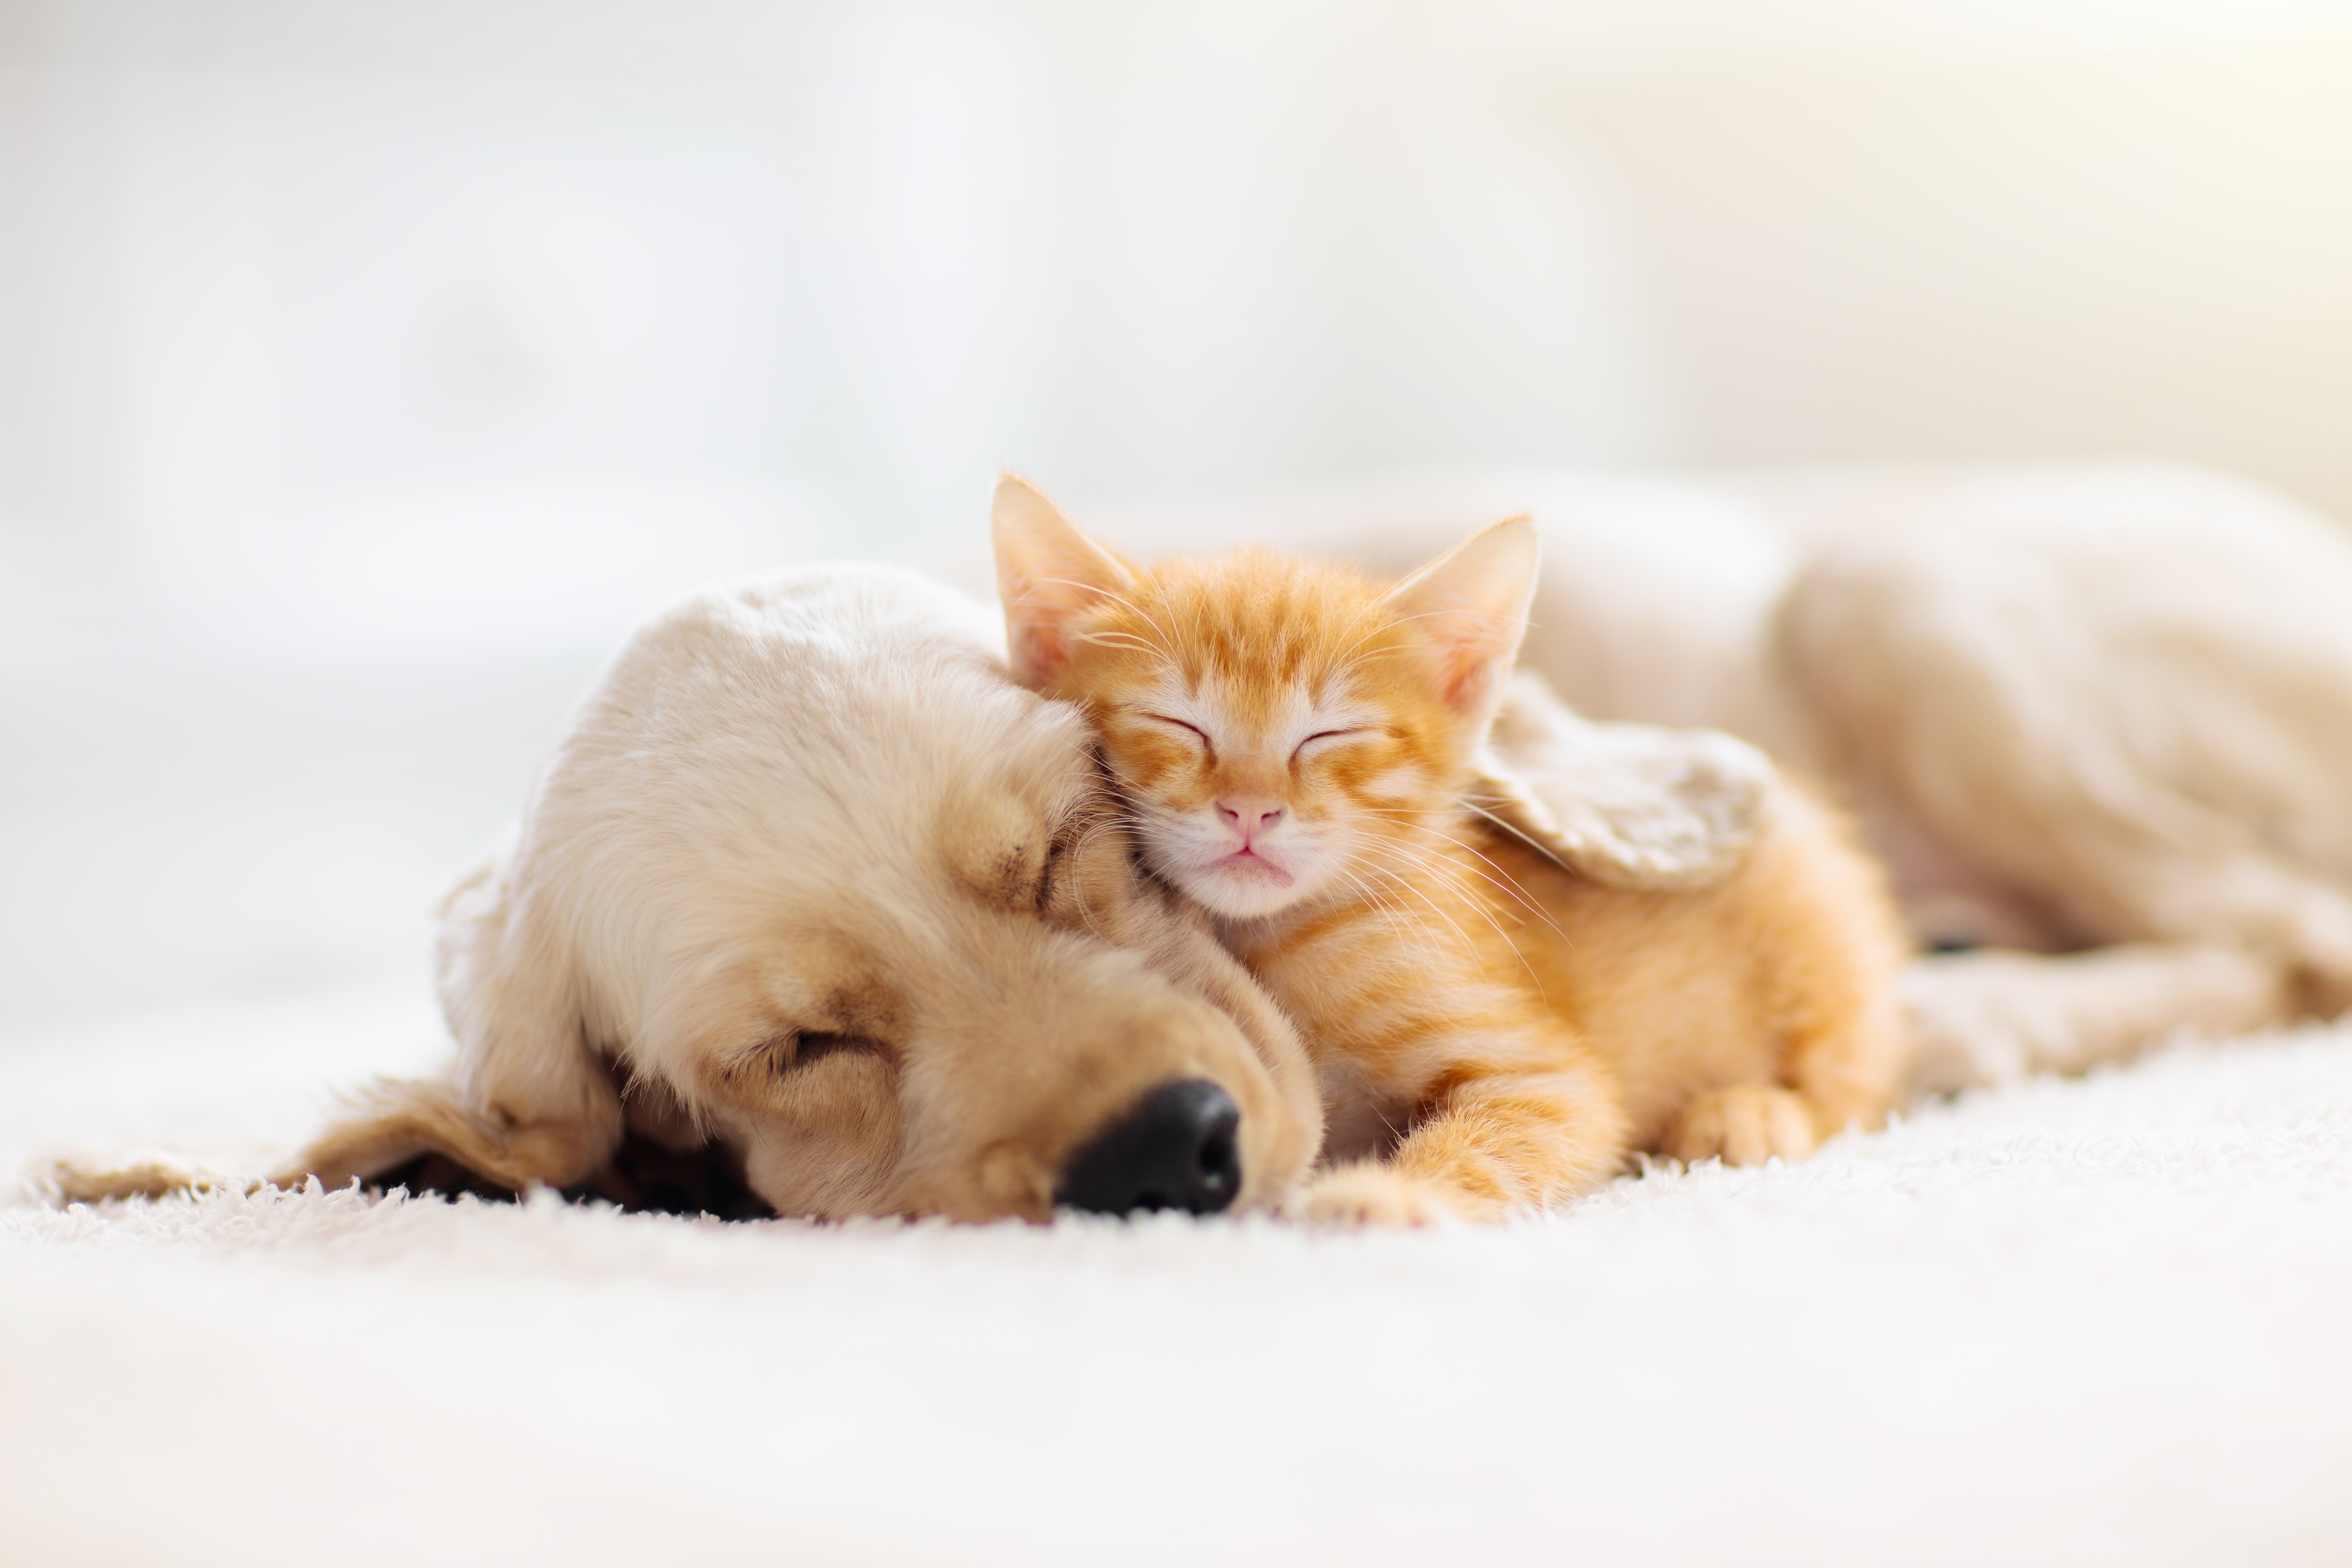 Pets & Alarm Systems - Can They Coexist?